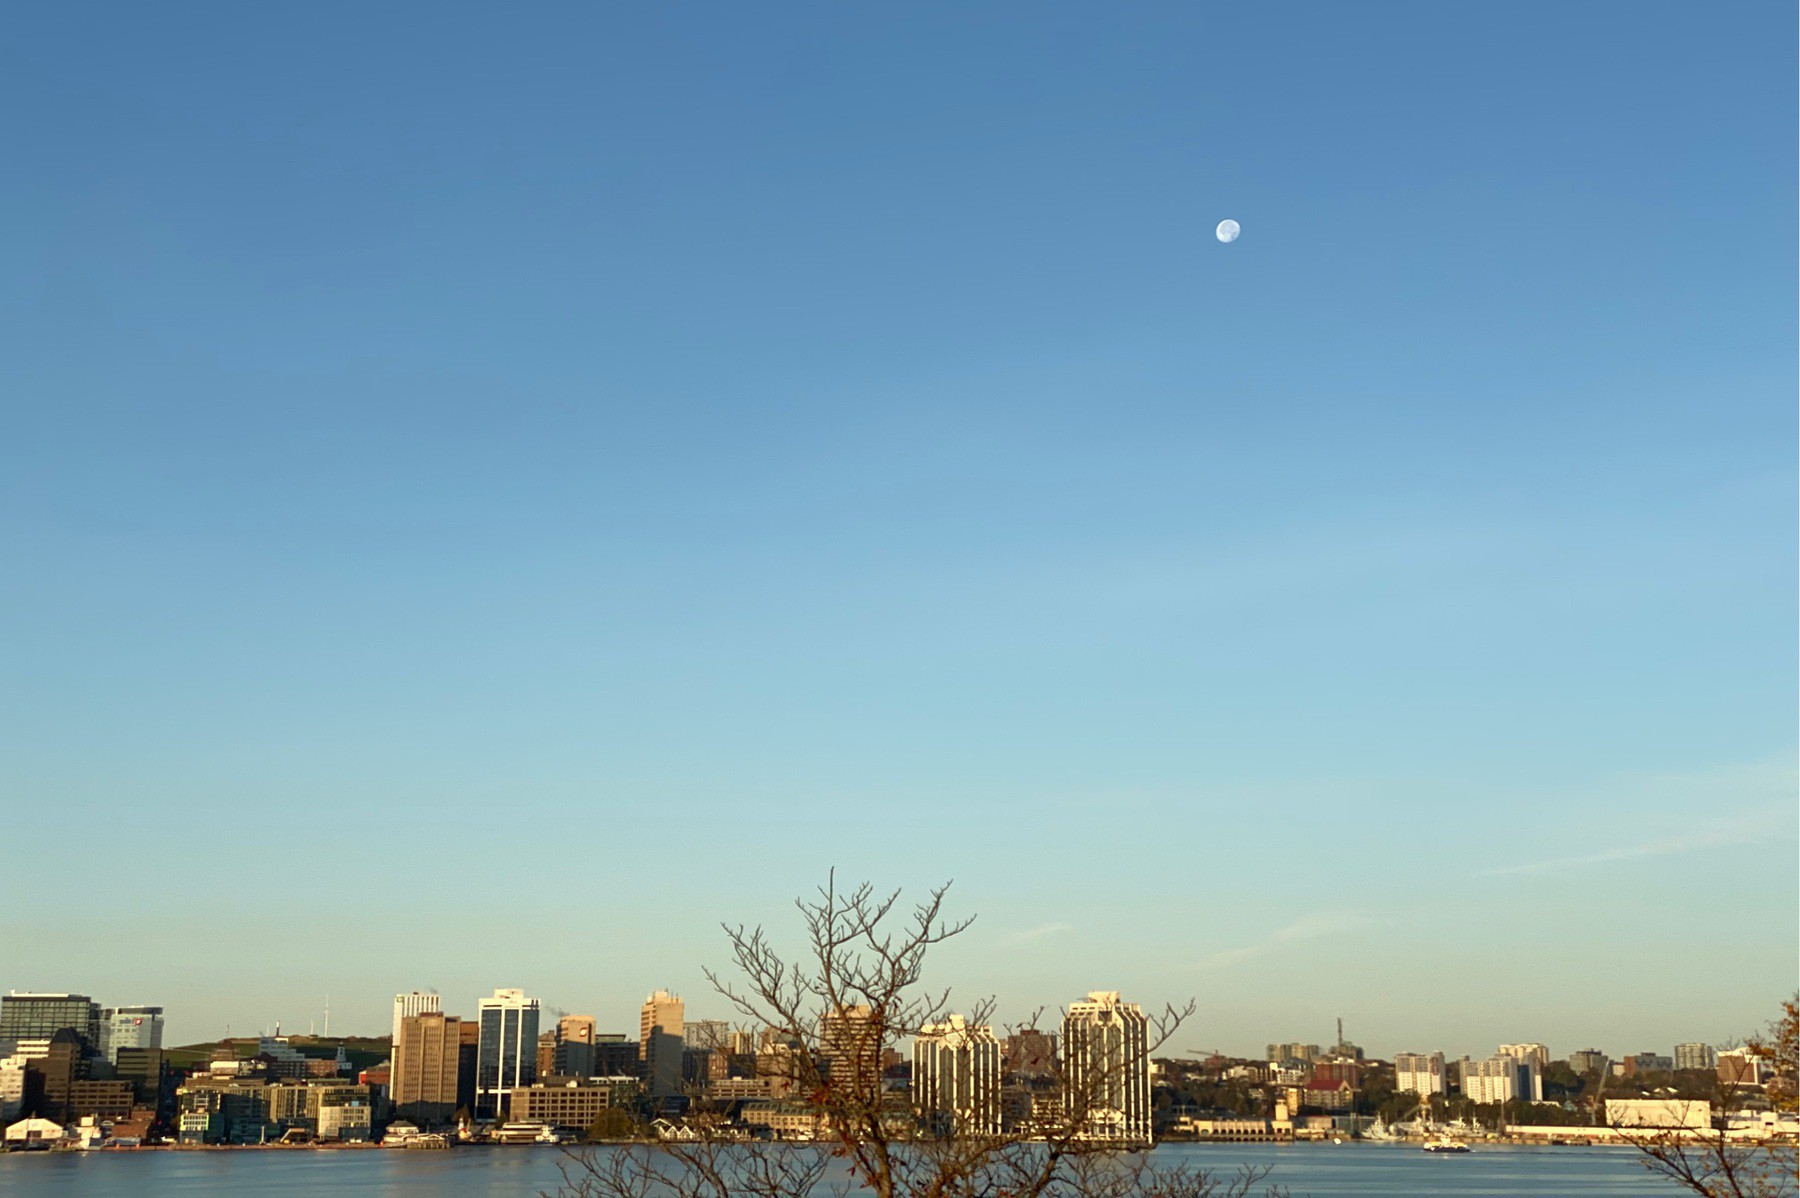 Sky over city with moon visible.